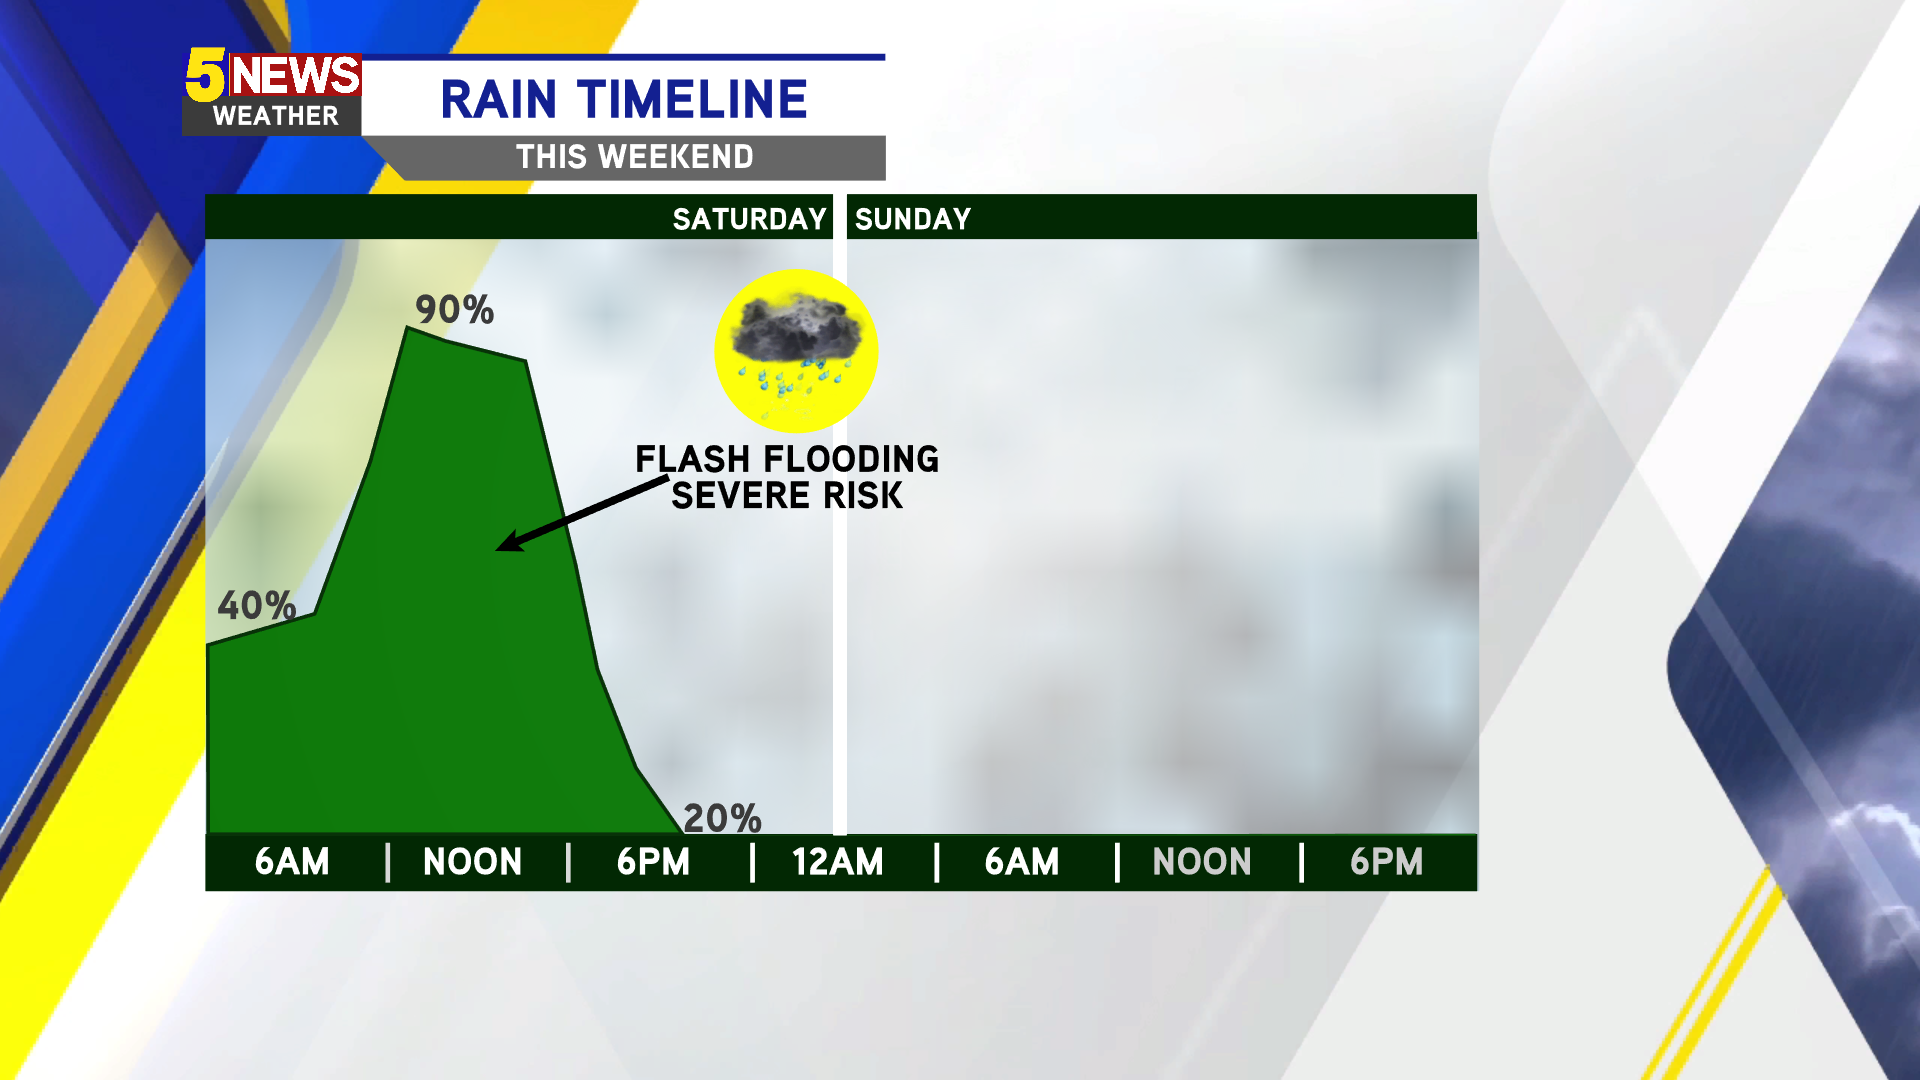 Timing for Sunday's rain and thunderstorms